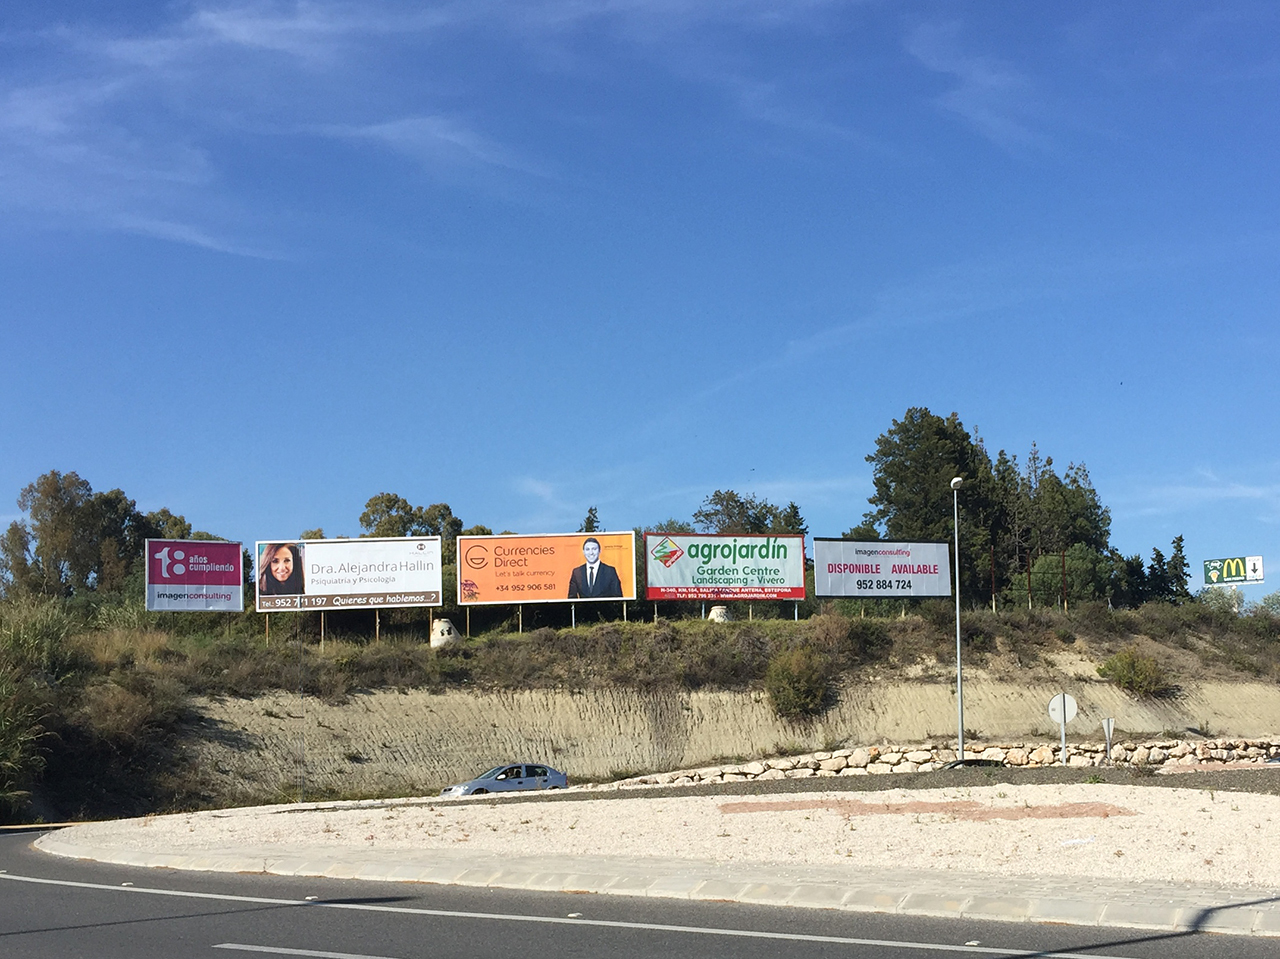 Advertising billboard in Marbella for Hallin Centre